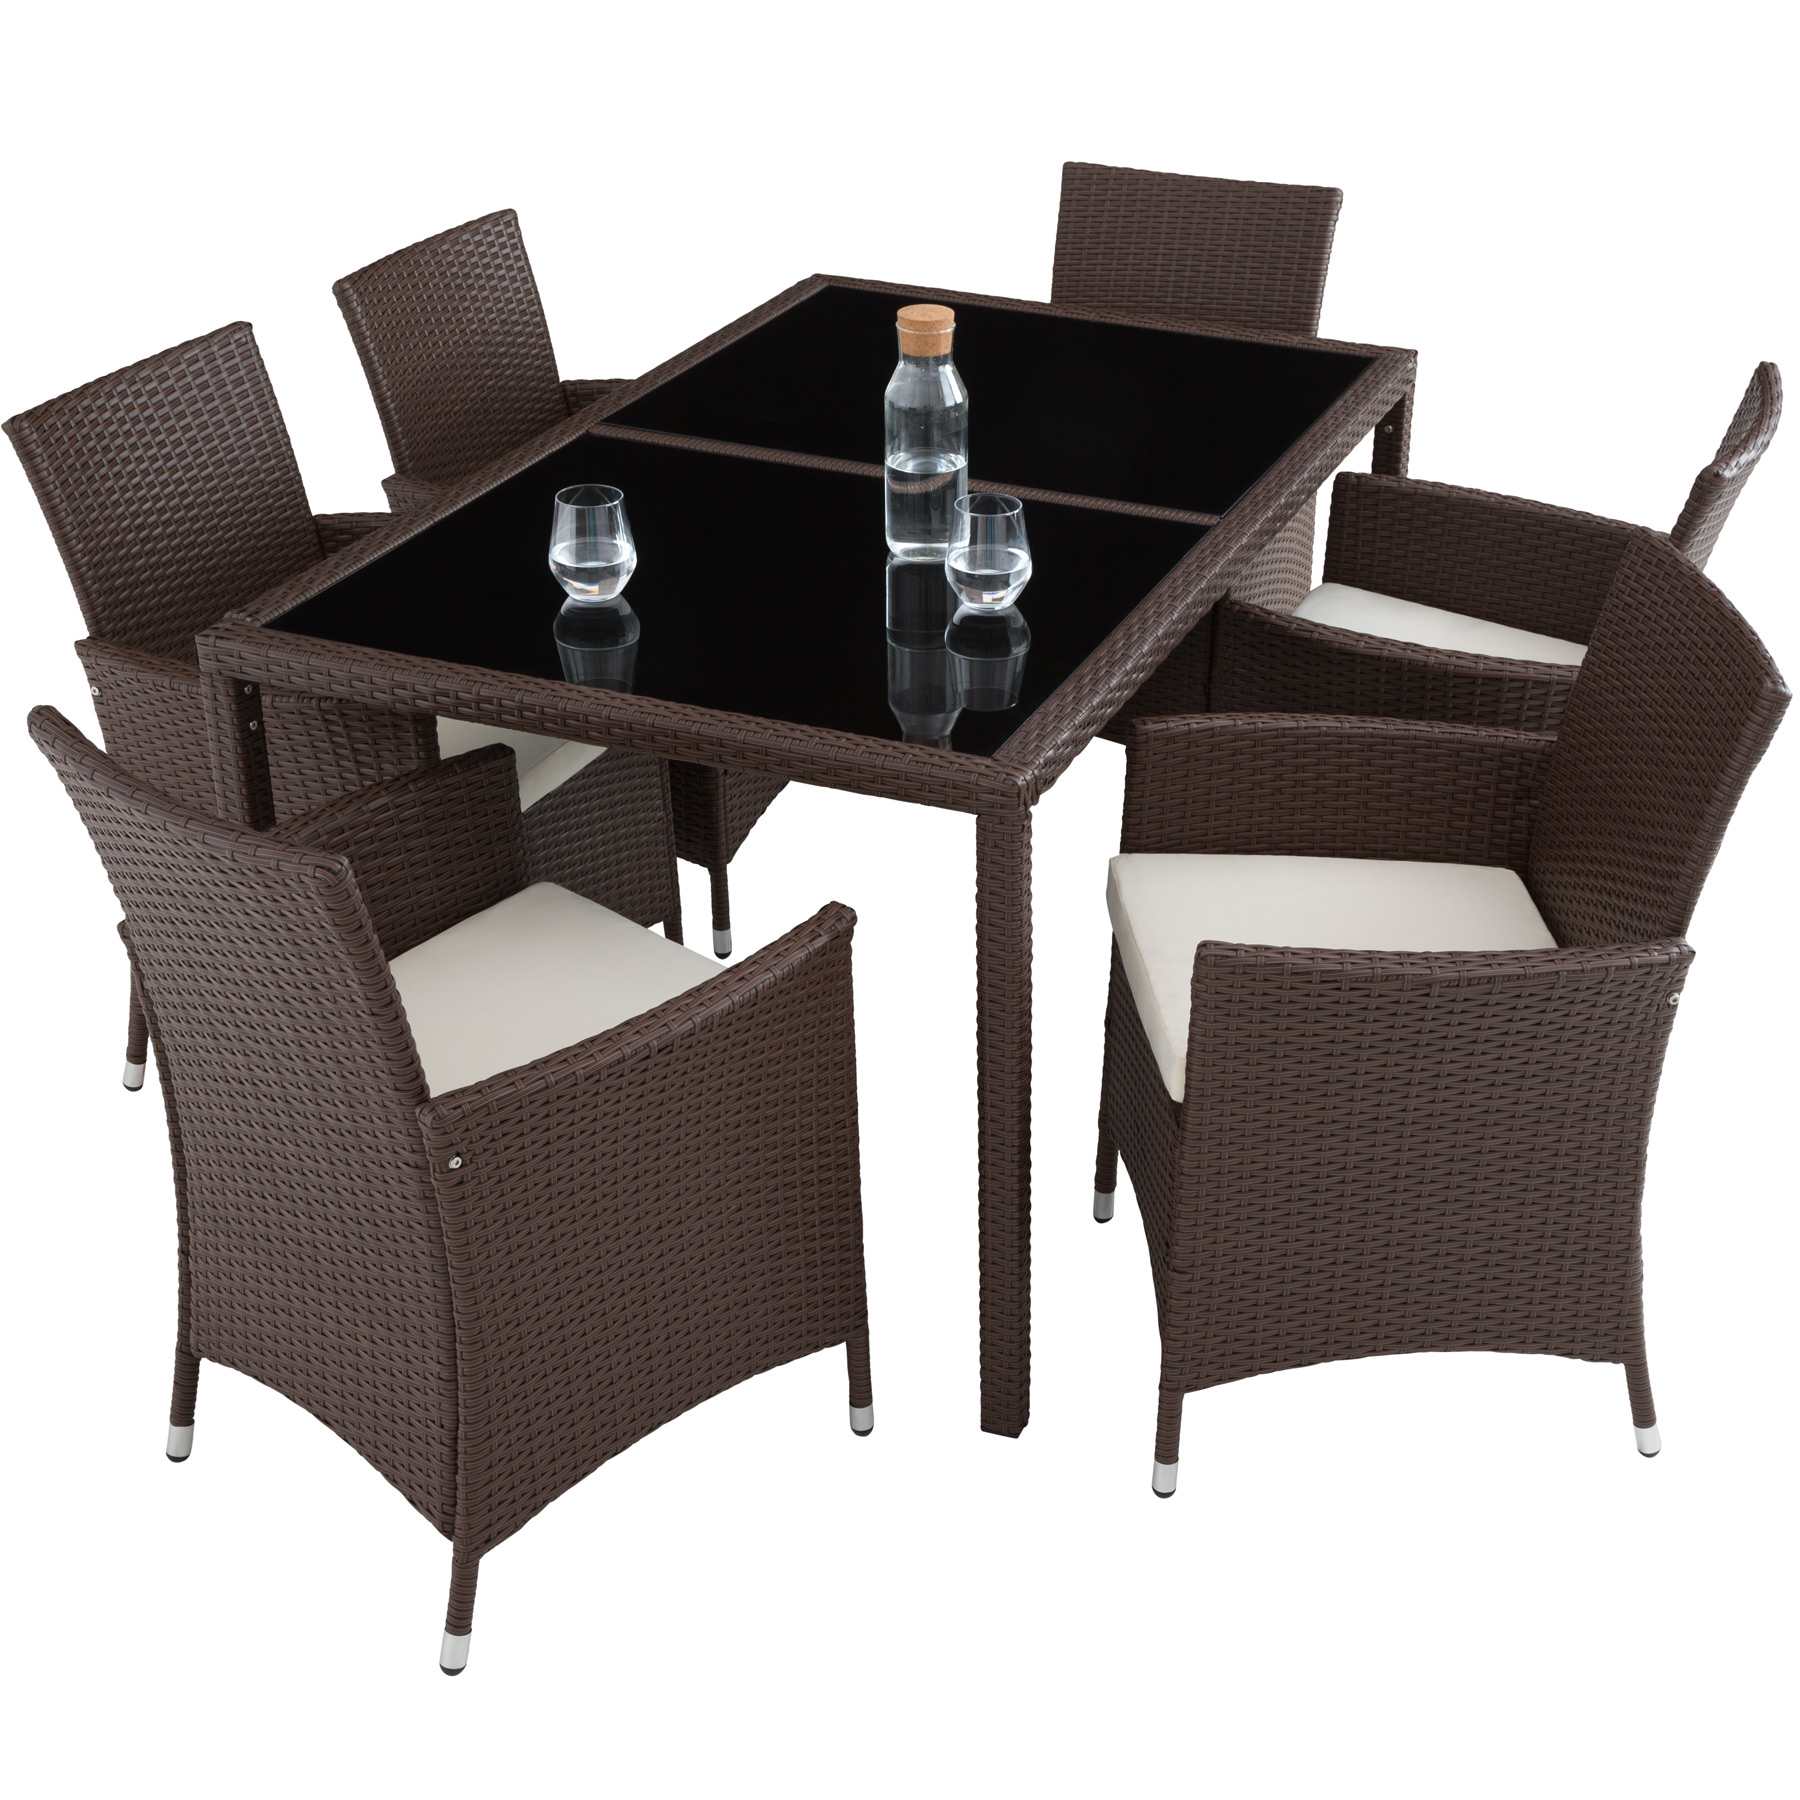 6 1 rattan garden furniture set 6 chairs table dining. Black Bedroom Furniture Sets. Home Design Ideas